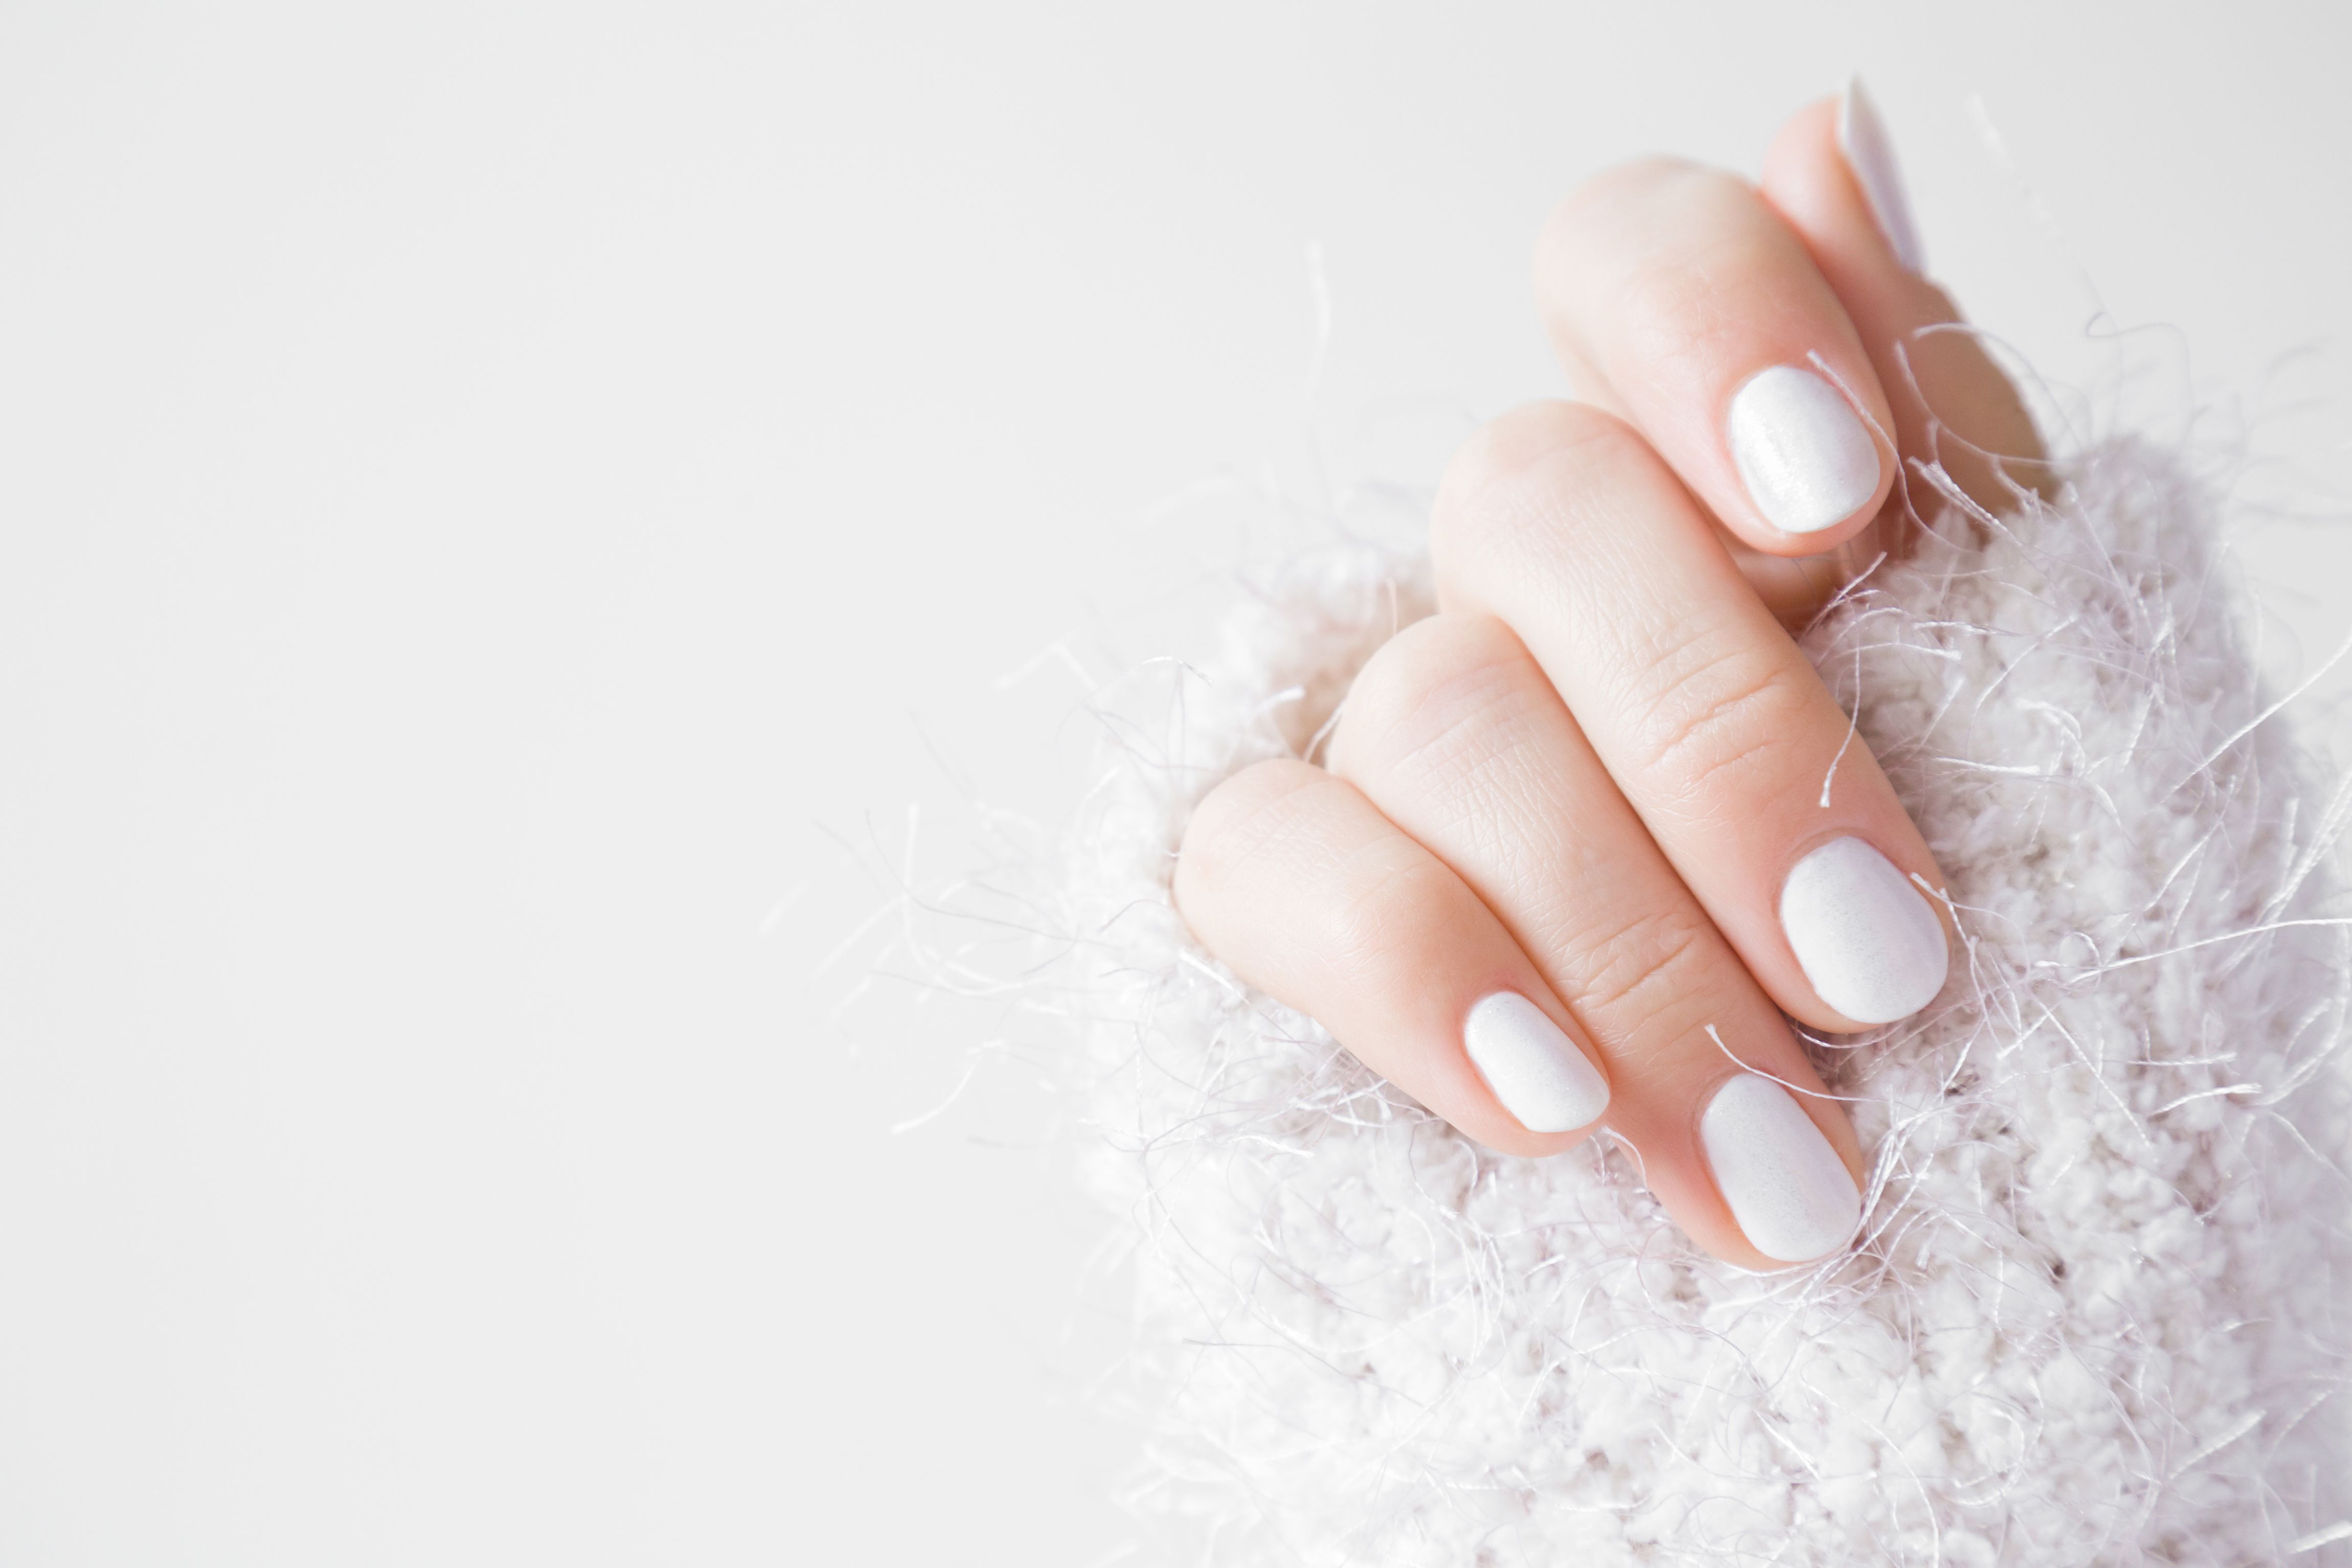 The Ultimate Guide For Taking Care Of Your Cuticles Nail Polish Manicure Nail Services